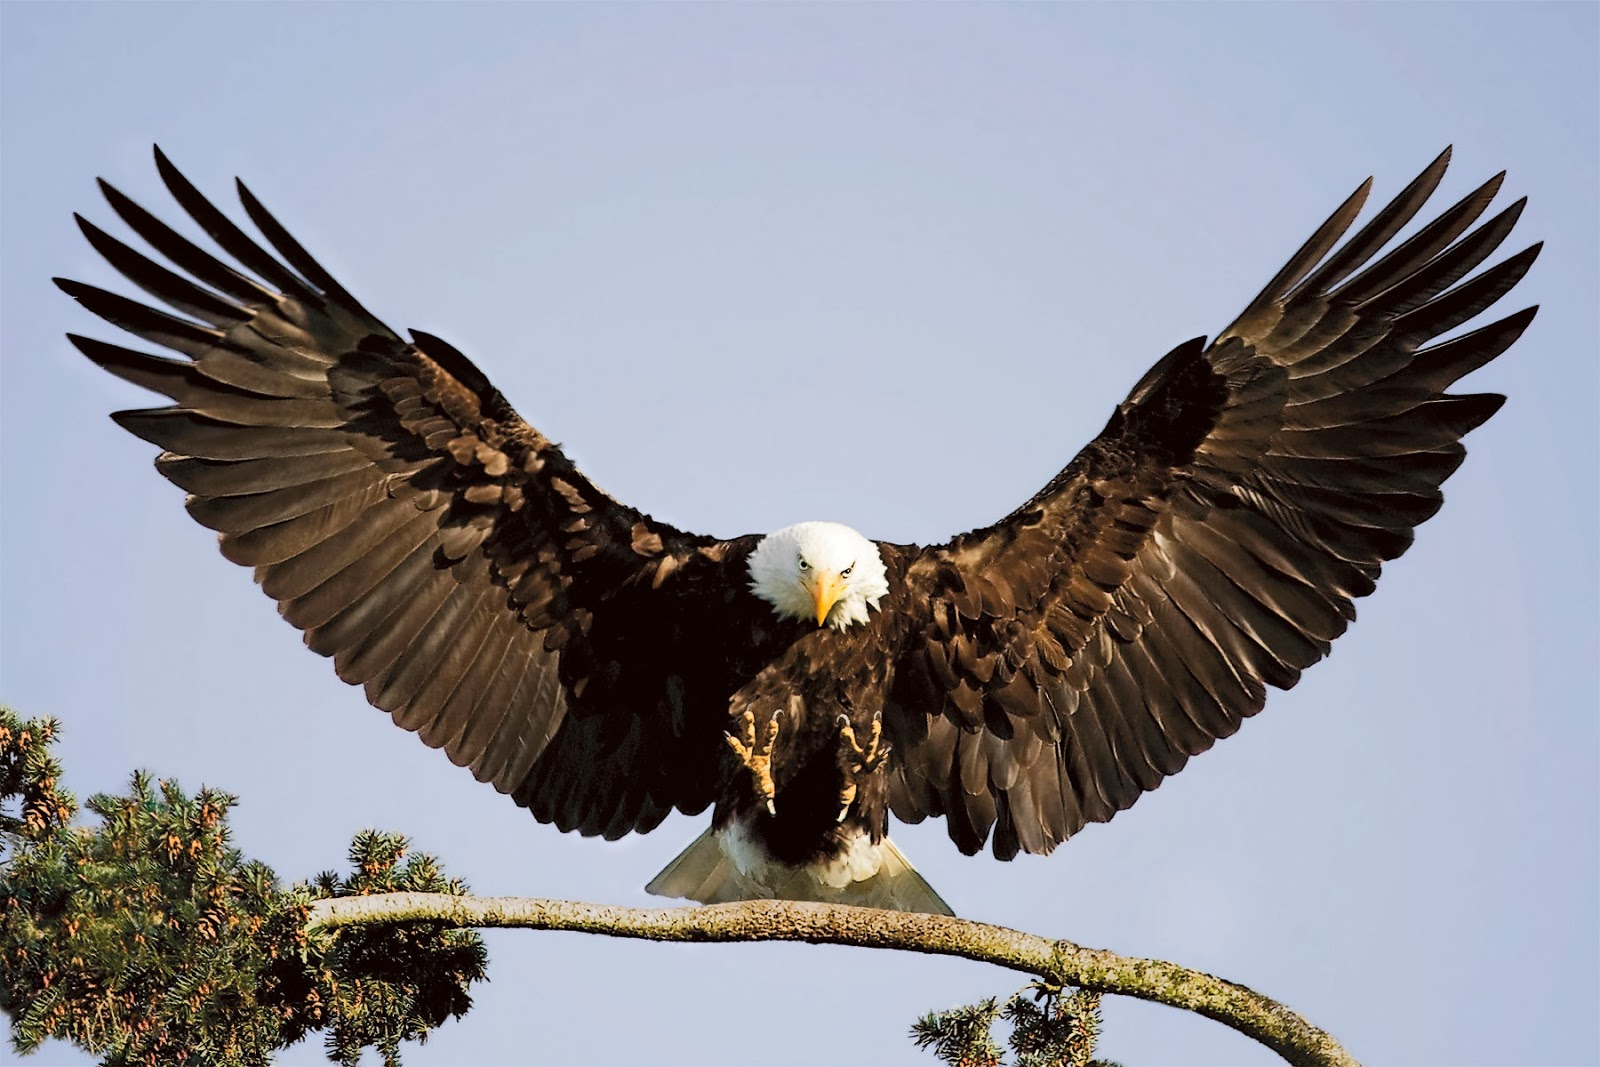 Eagle Most Beautiful Images | Top hd animals wallpapers